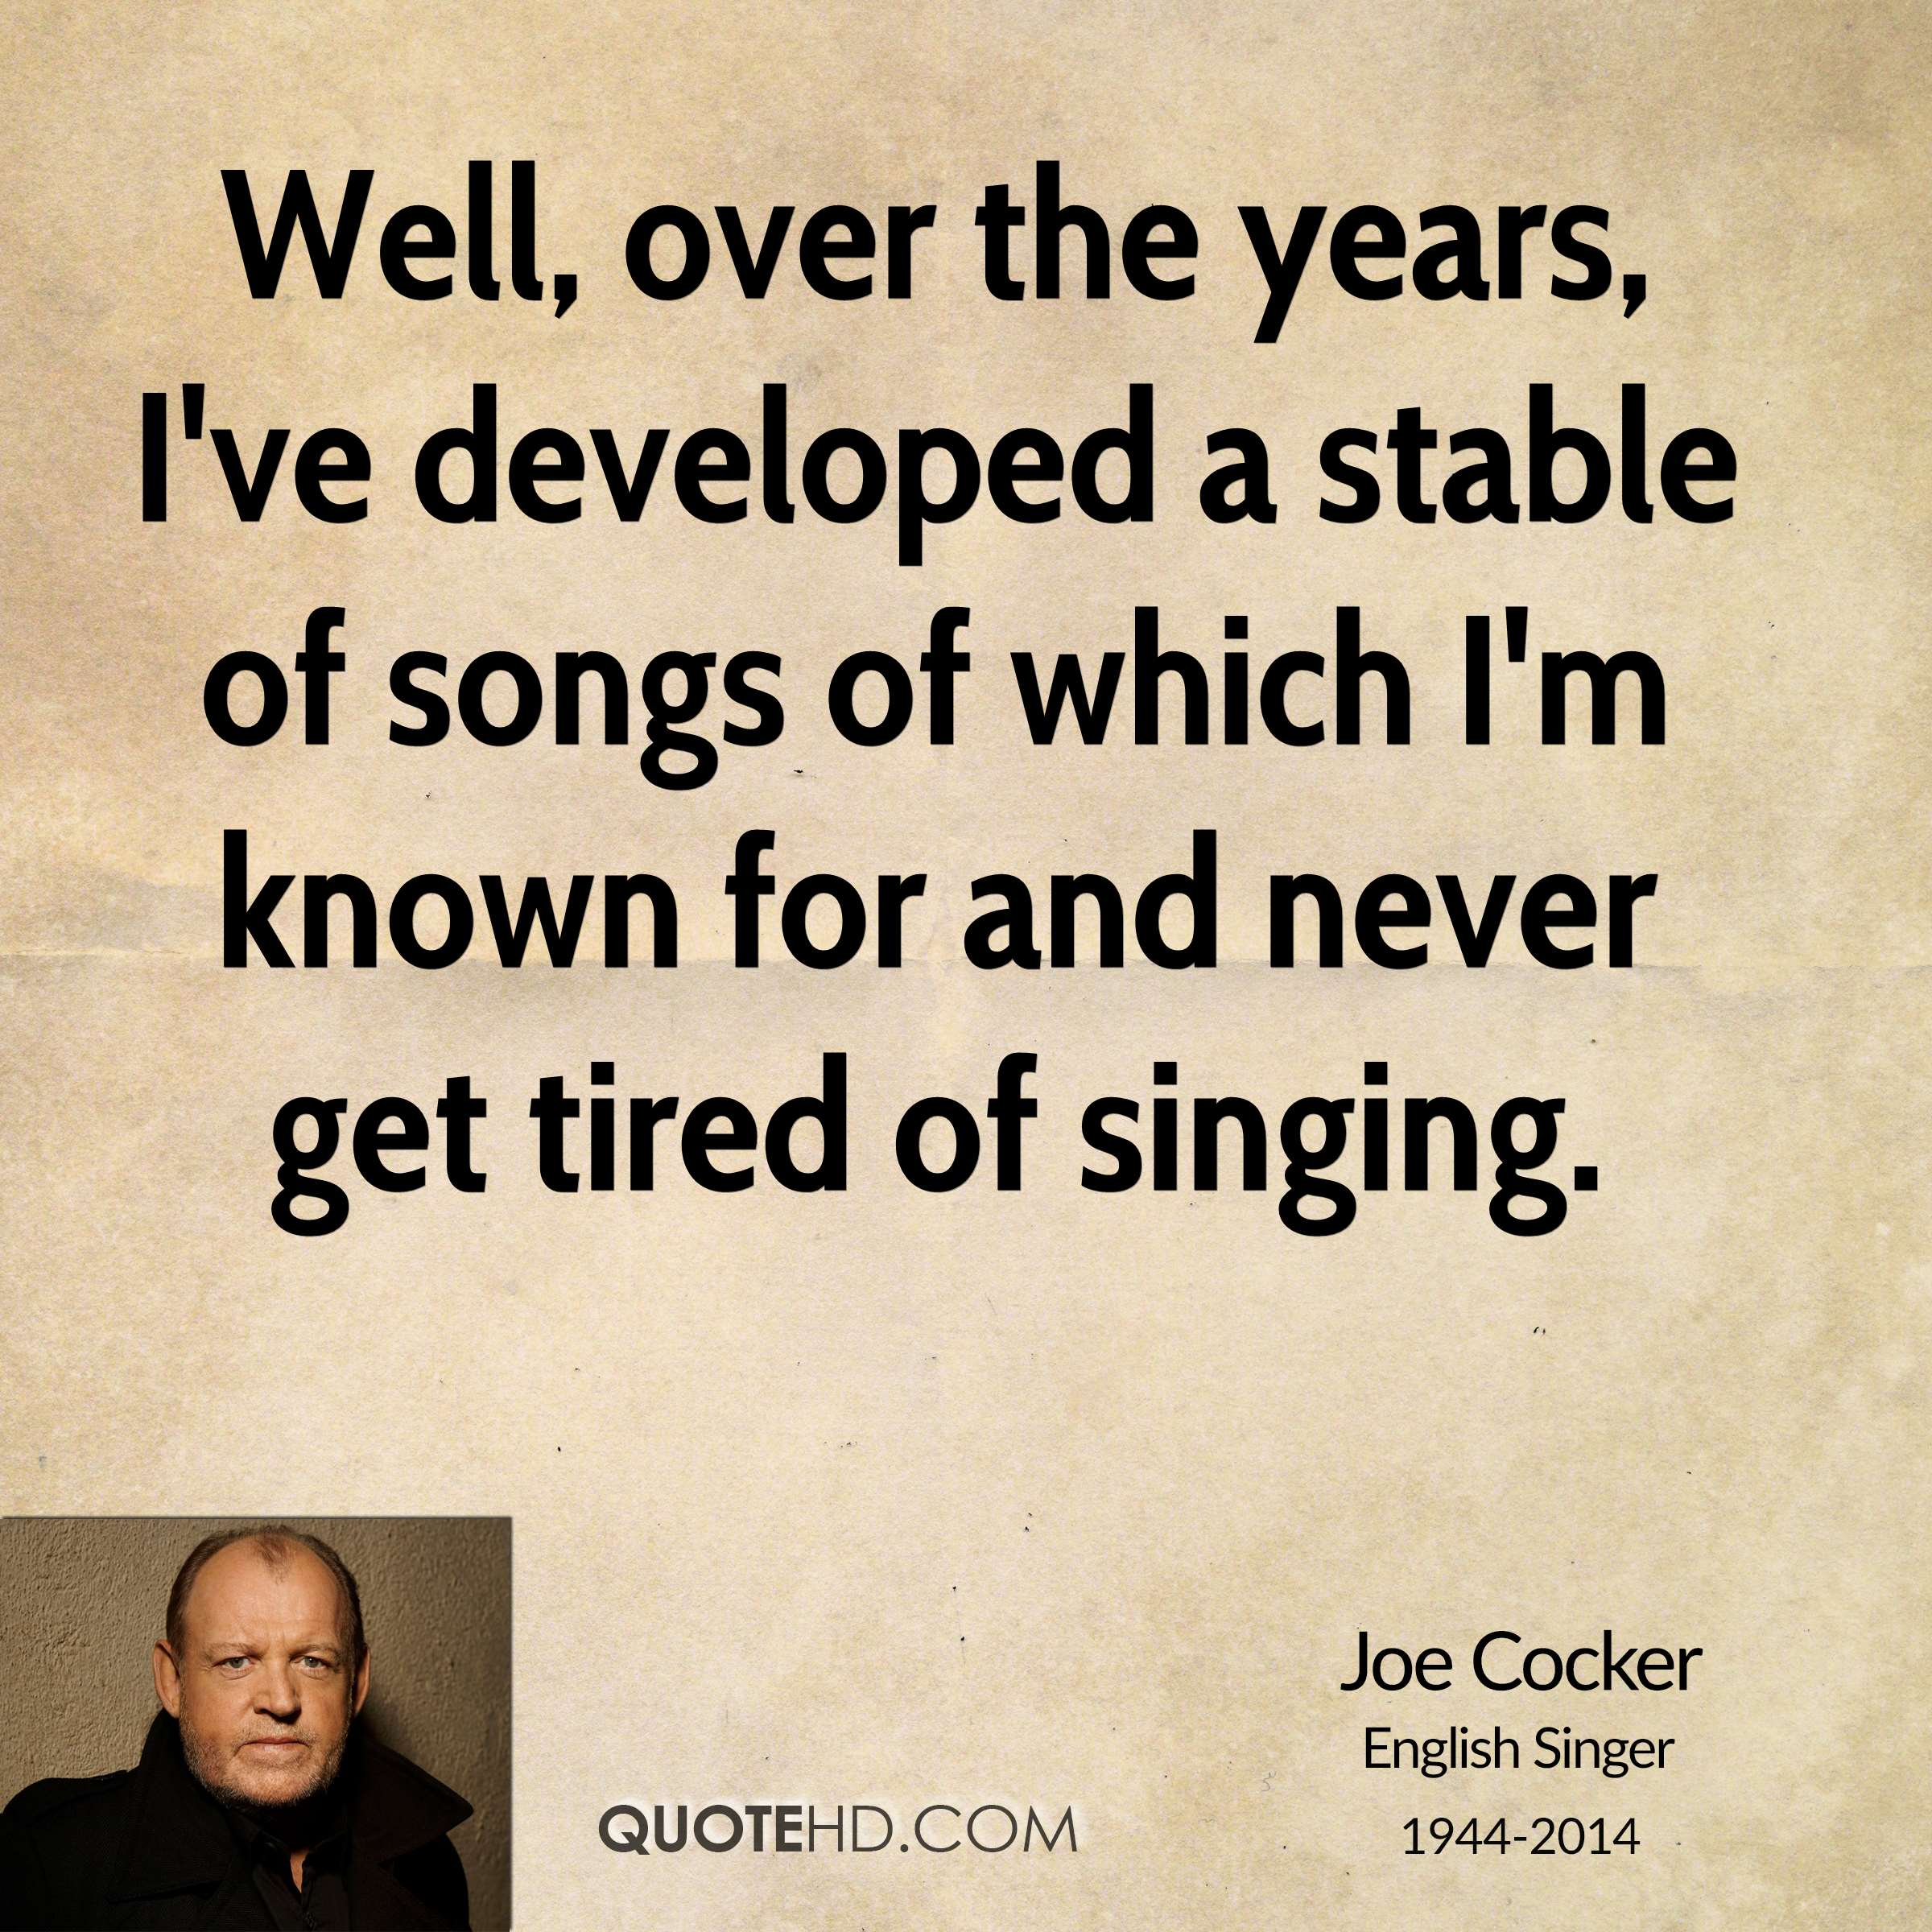 Well, over the years, I've developed a stable of songs of which I'm known for and never get tired of singing.